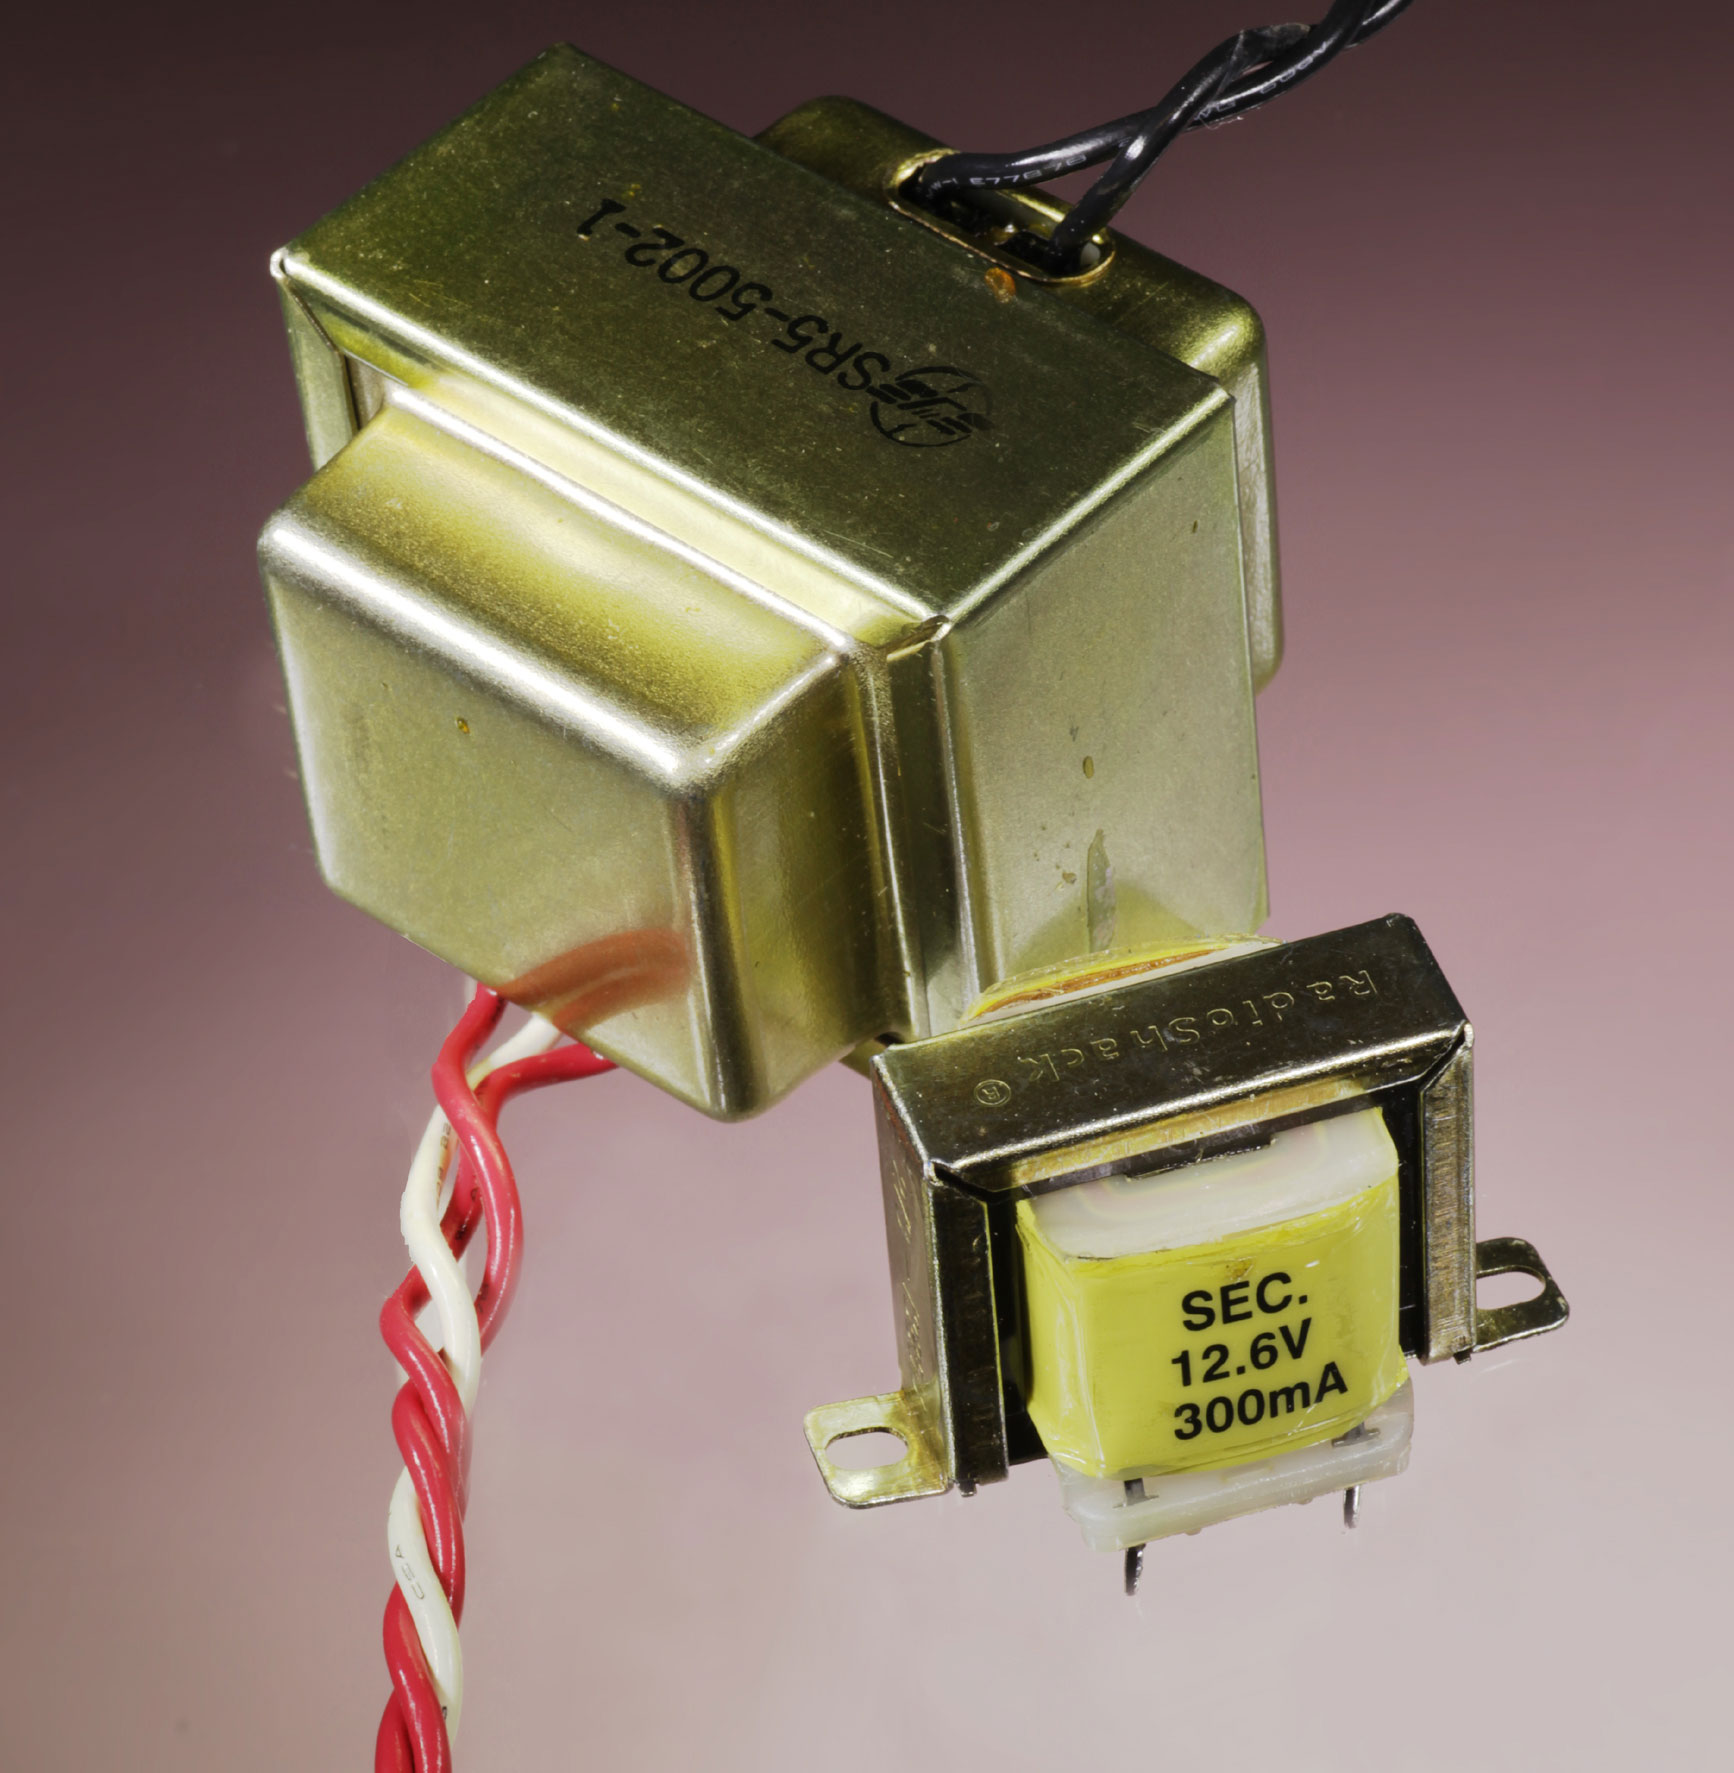 Component of the Month: Transformer